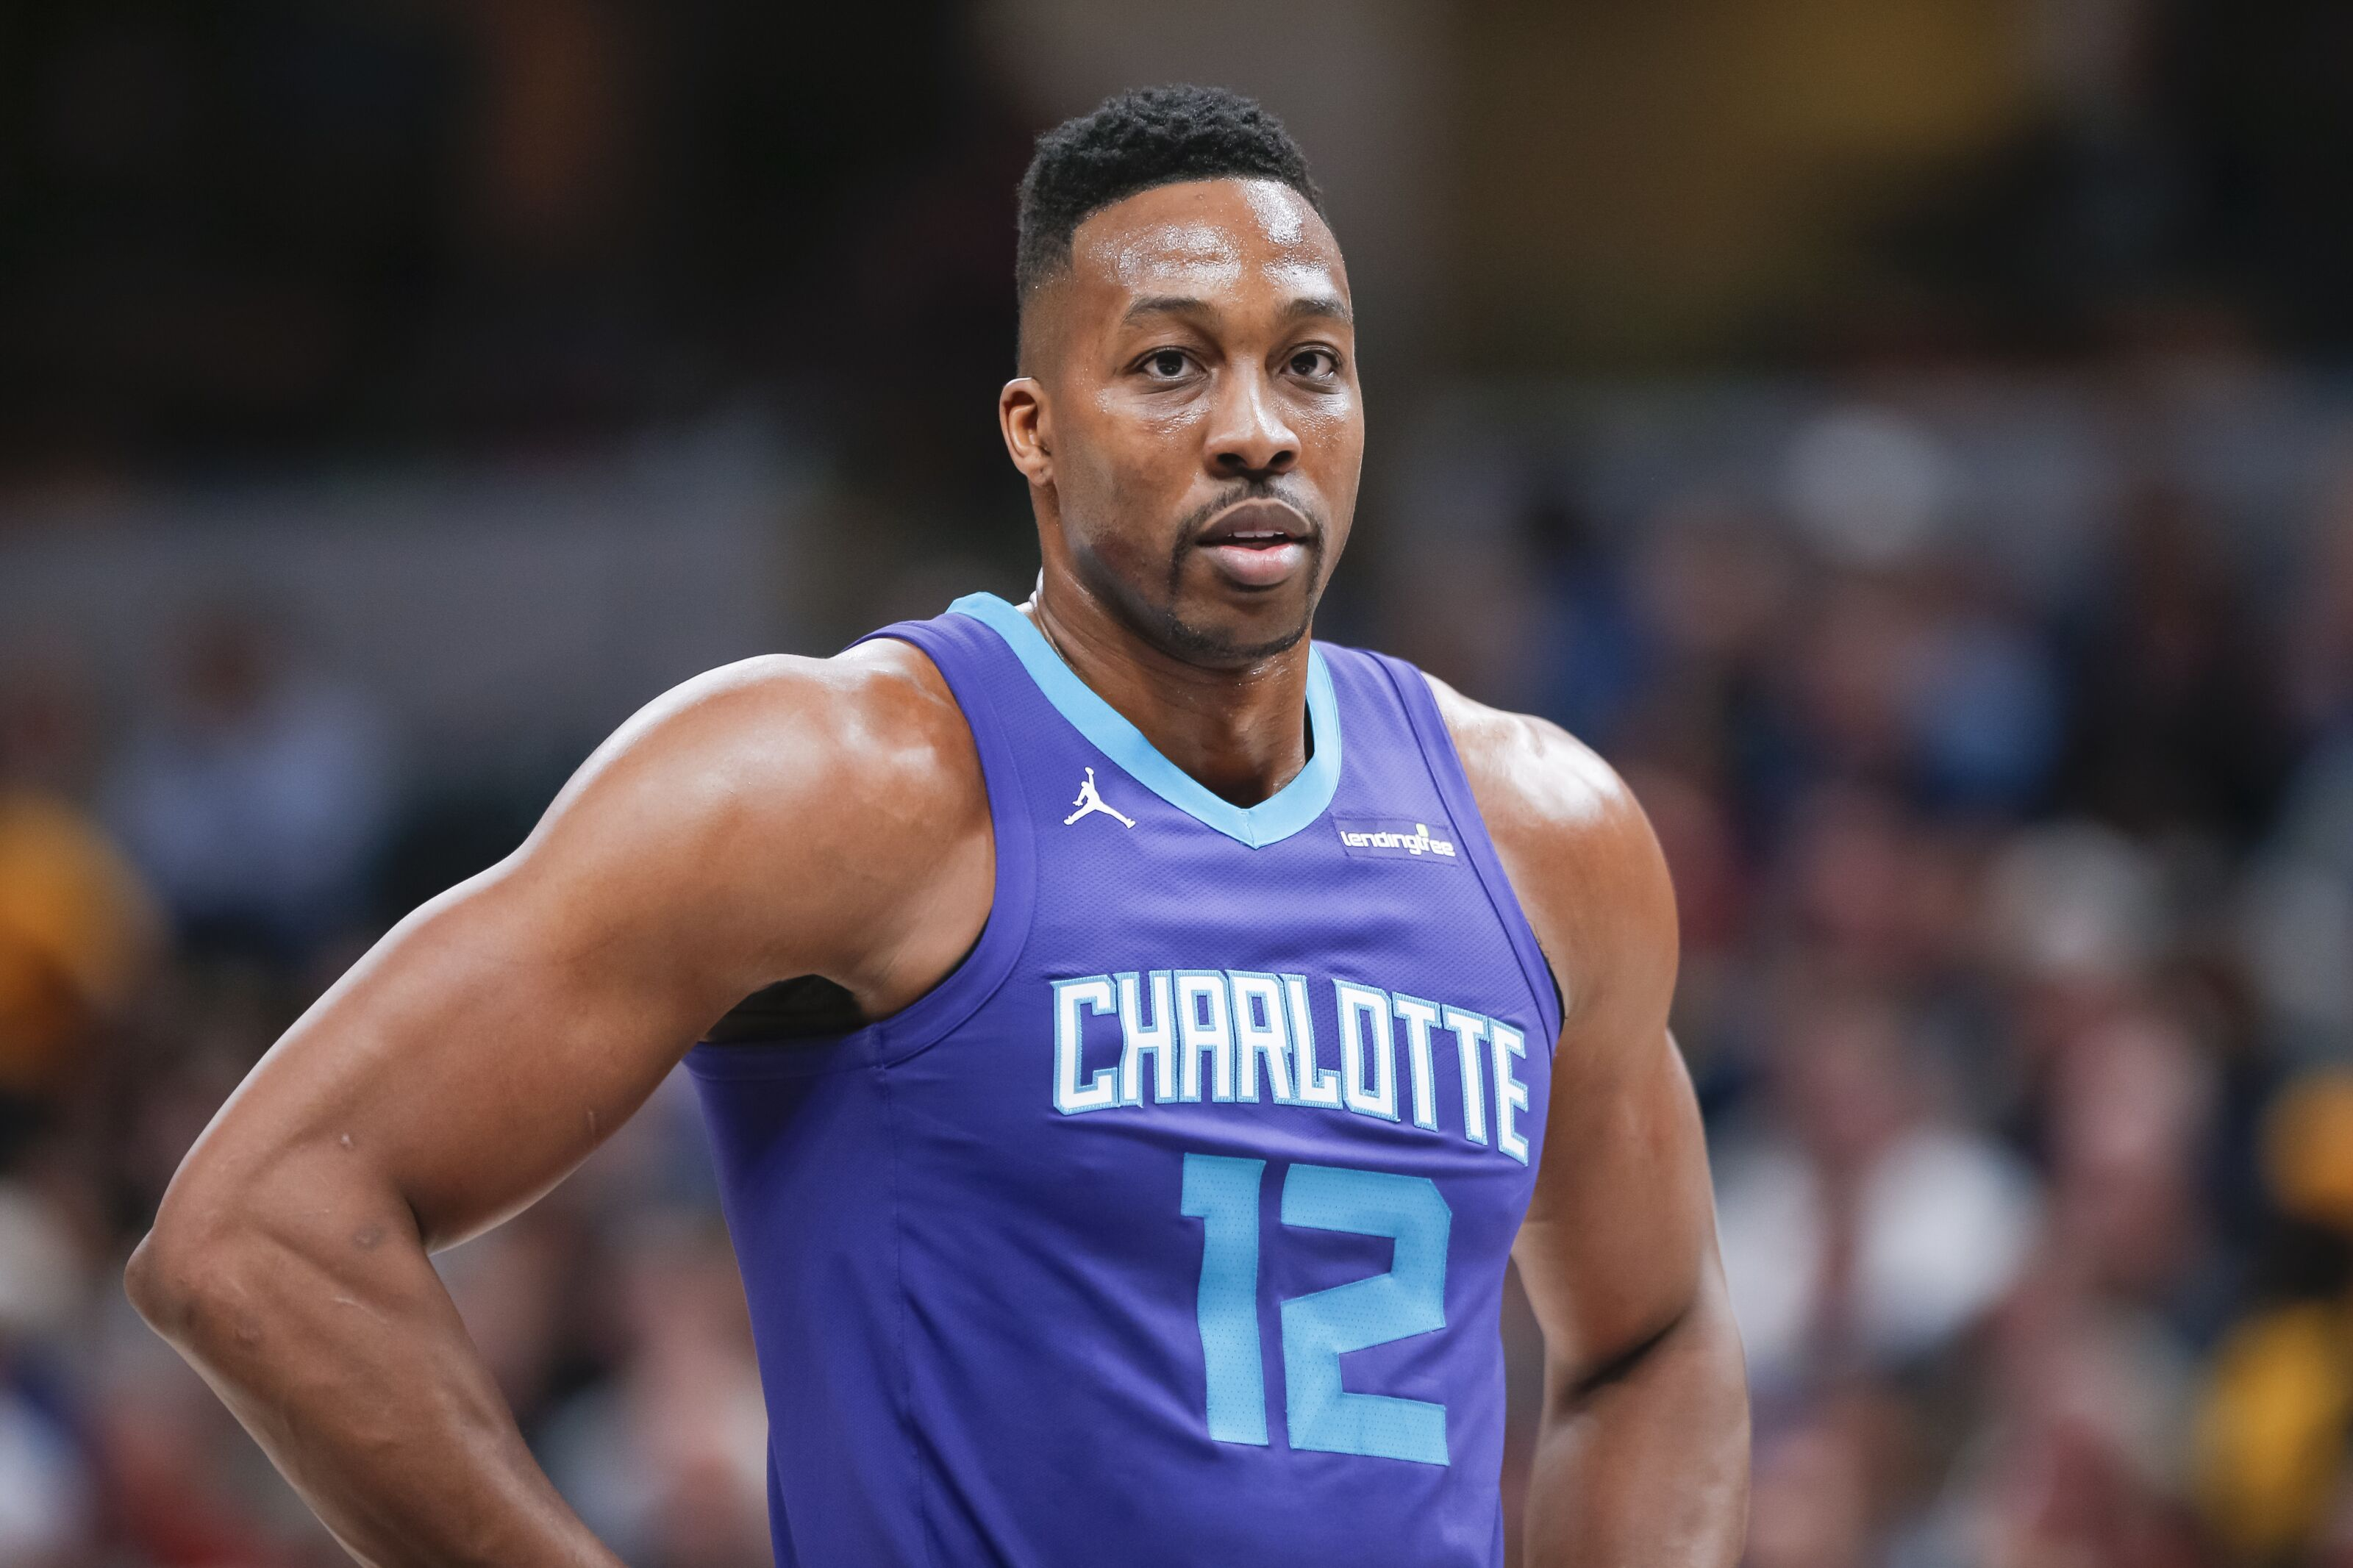 outlet store 55690 df24e Charlotte Hornets: 2017-18 player grades for Dwight Howard